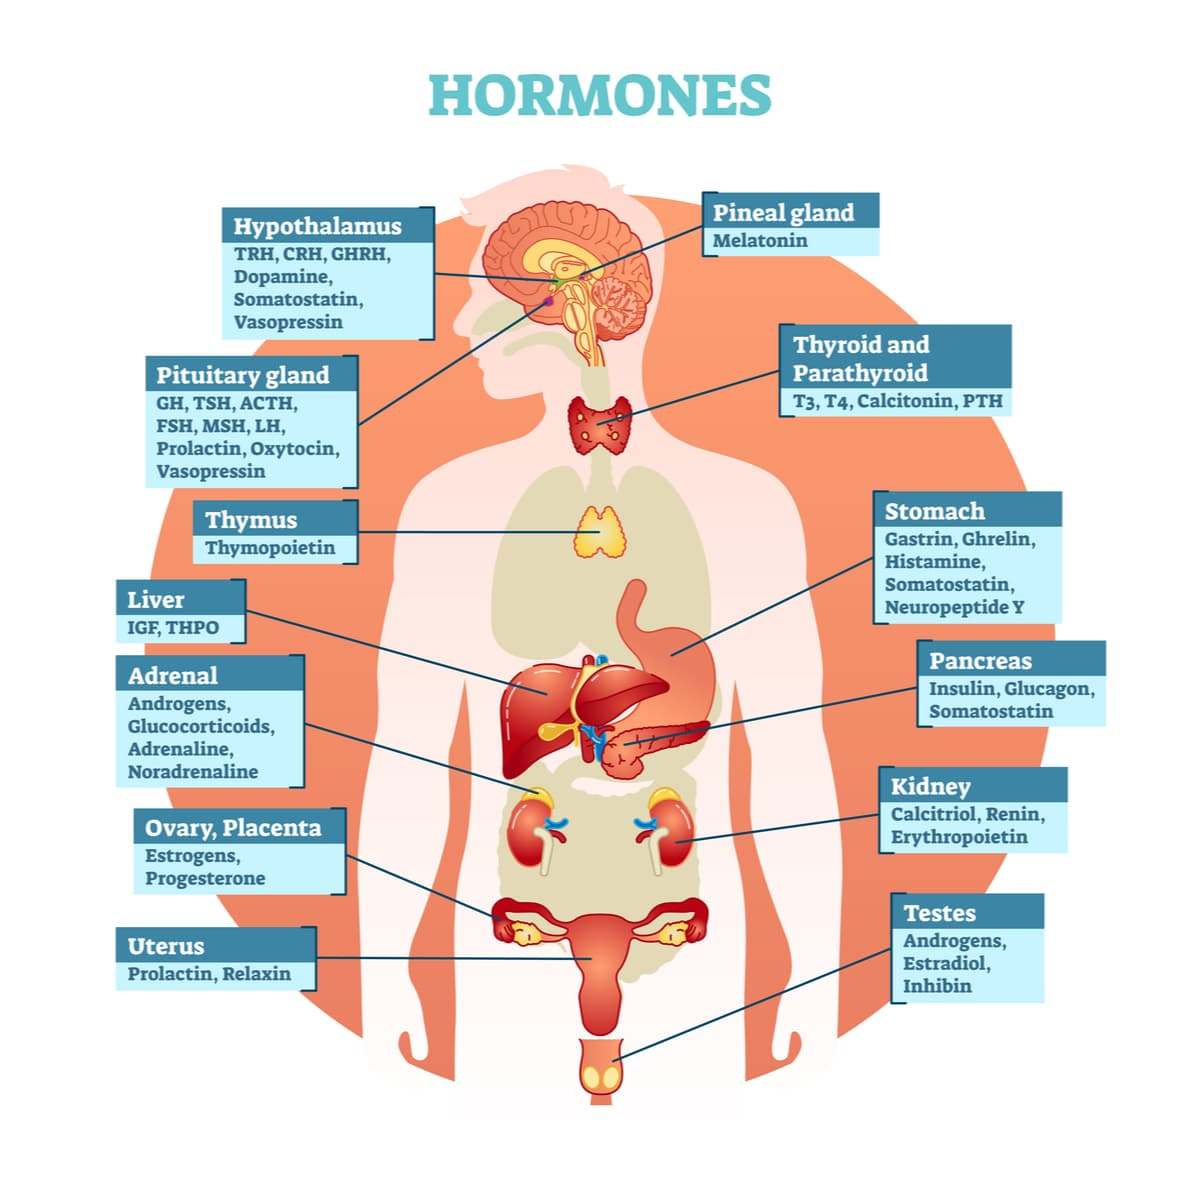 Diagram of the human body showing where the different hormones are and their roles